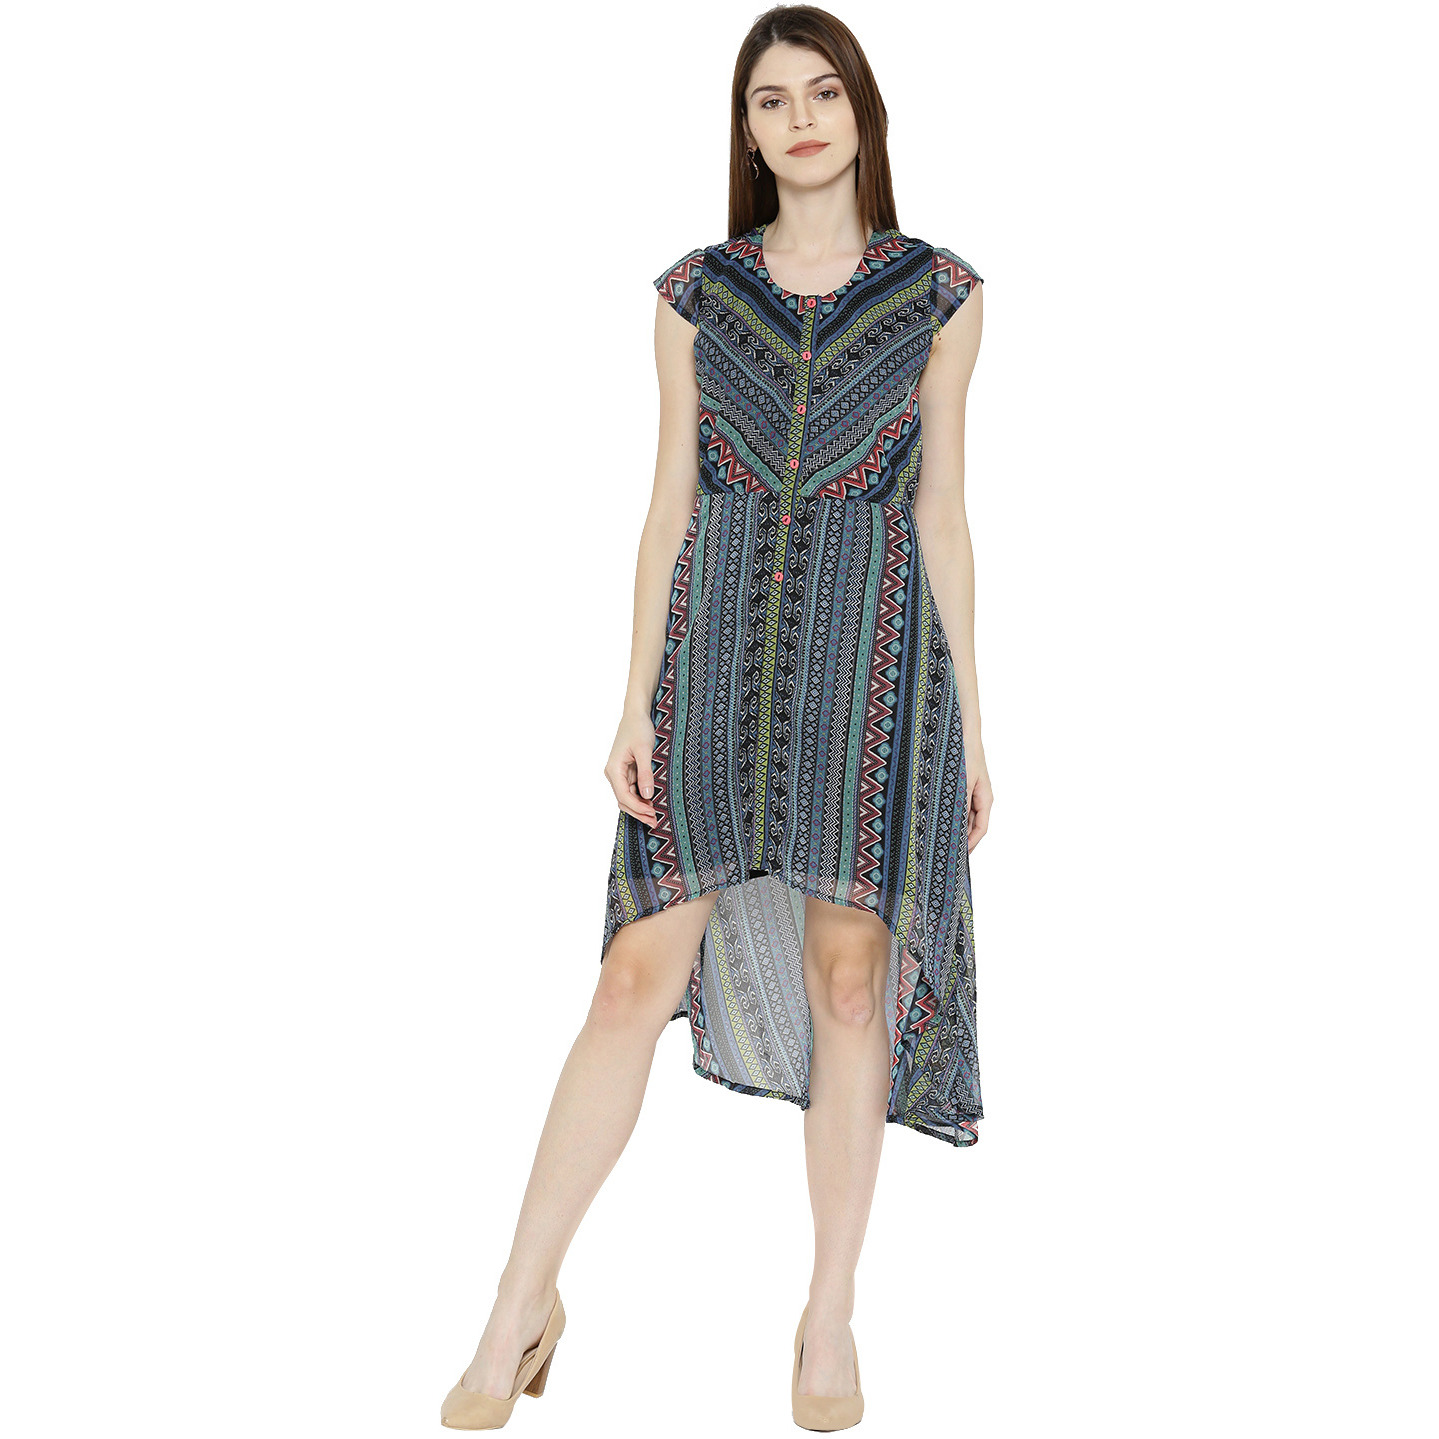 Ayaany Women's Fashion MultiPolyesterAsymetrical Hemilne dress